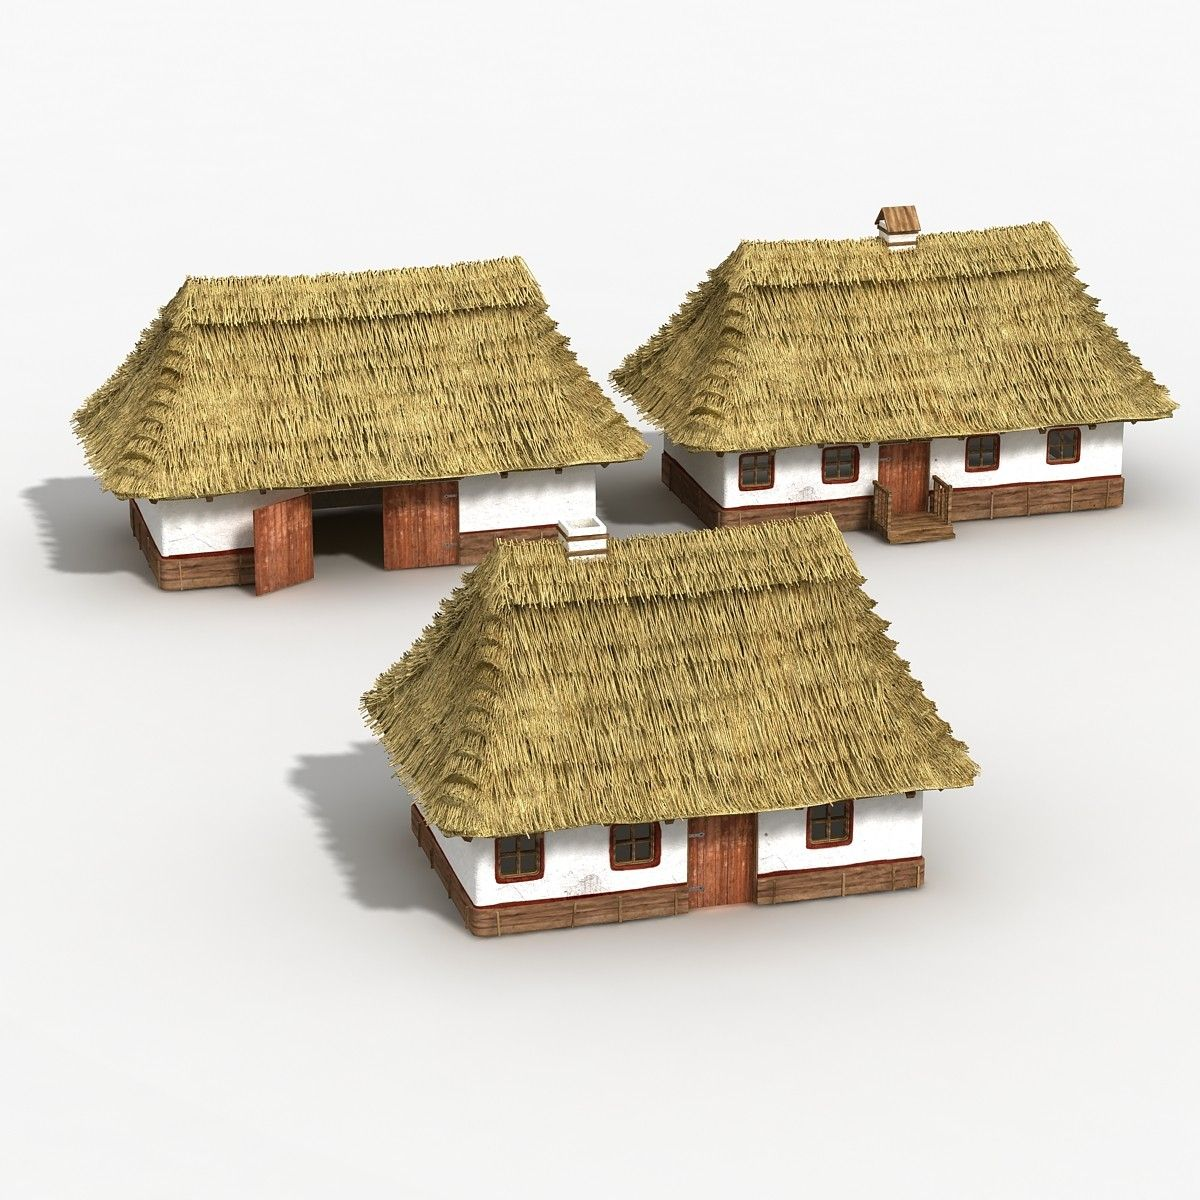 3D Village Houses Model - 3D Model | Thatched roof, thatch